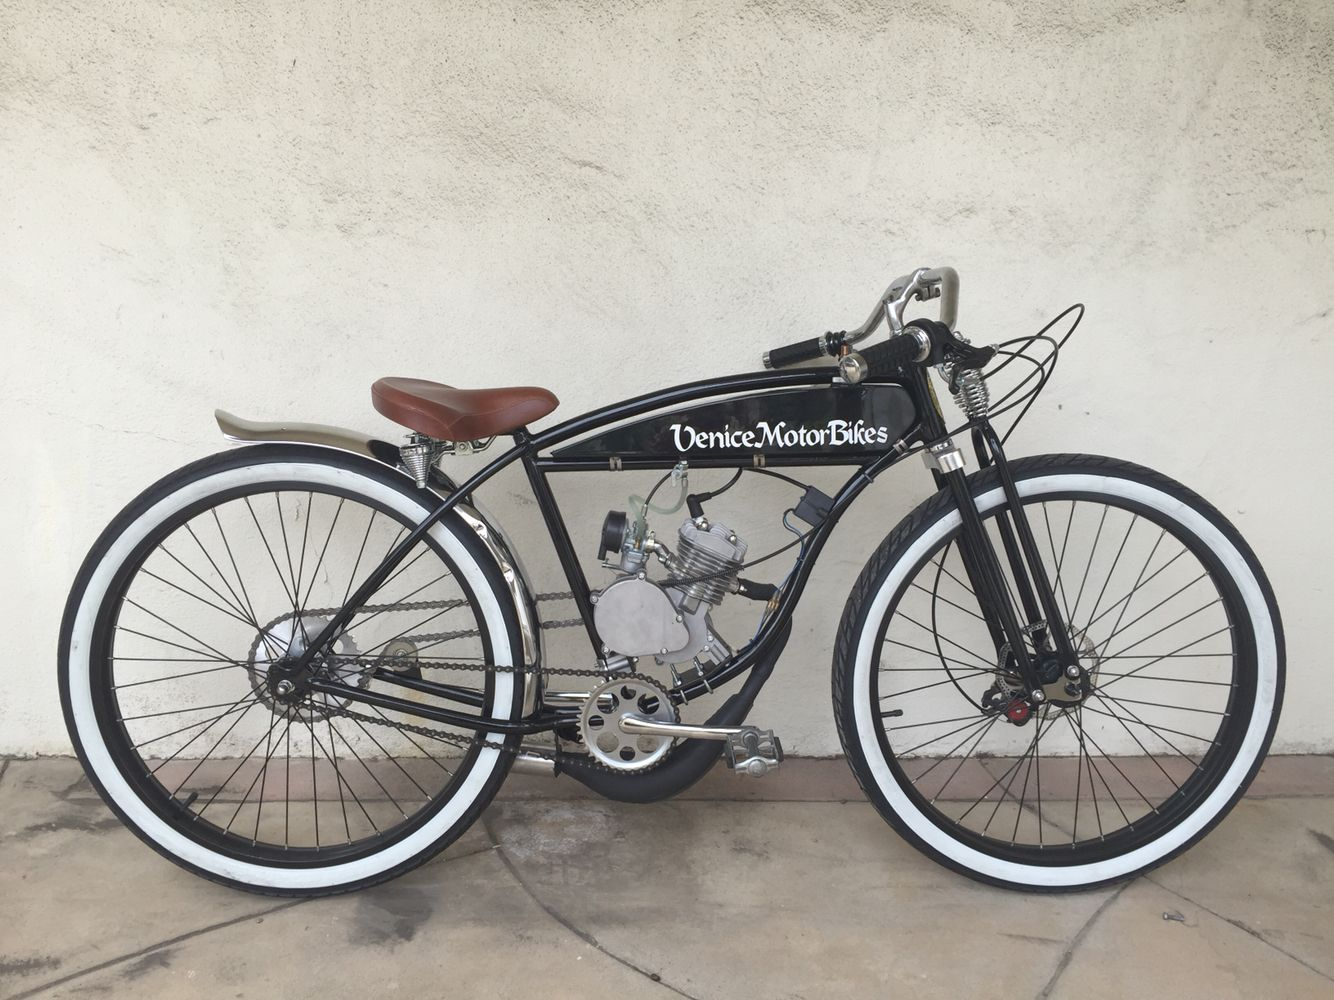 Vintage Schwinn BTR Board Track Racer Motorcycle Replica Motorized Bicycle Piston Bike